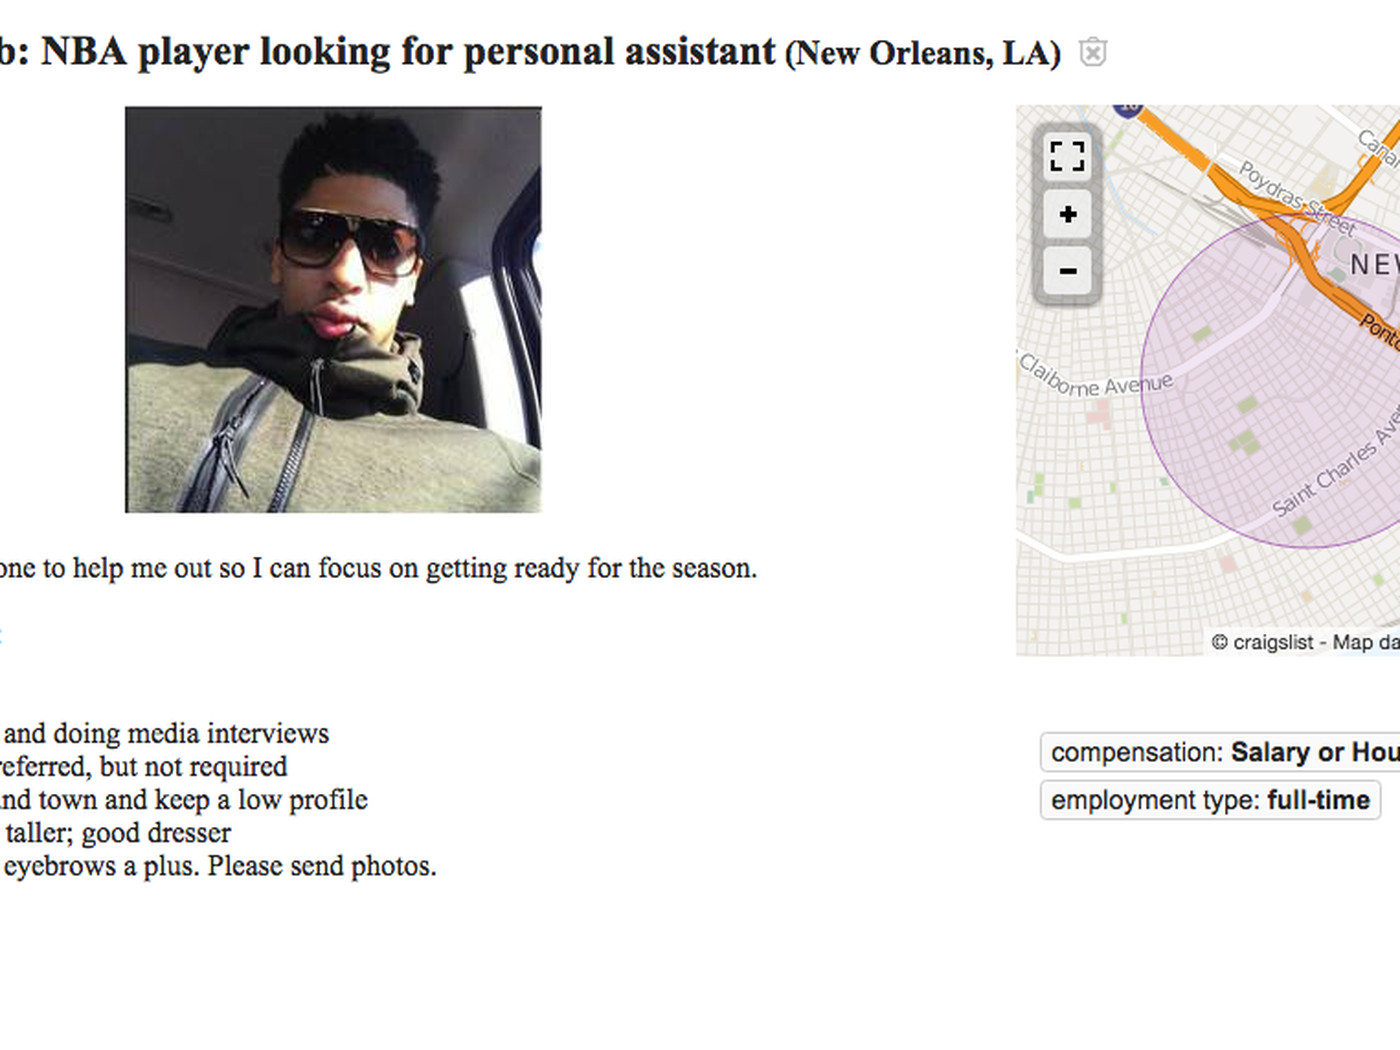 Anthony Davis posted a Craigslist ad for a personal